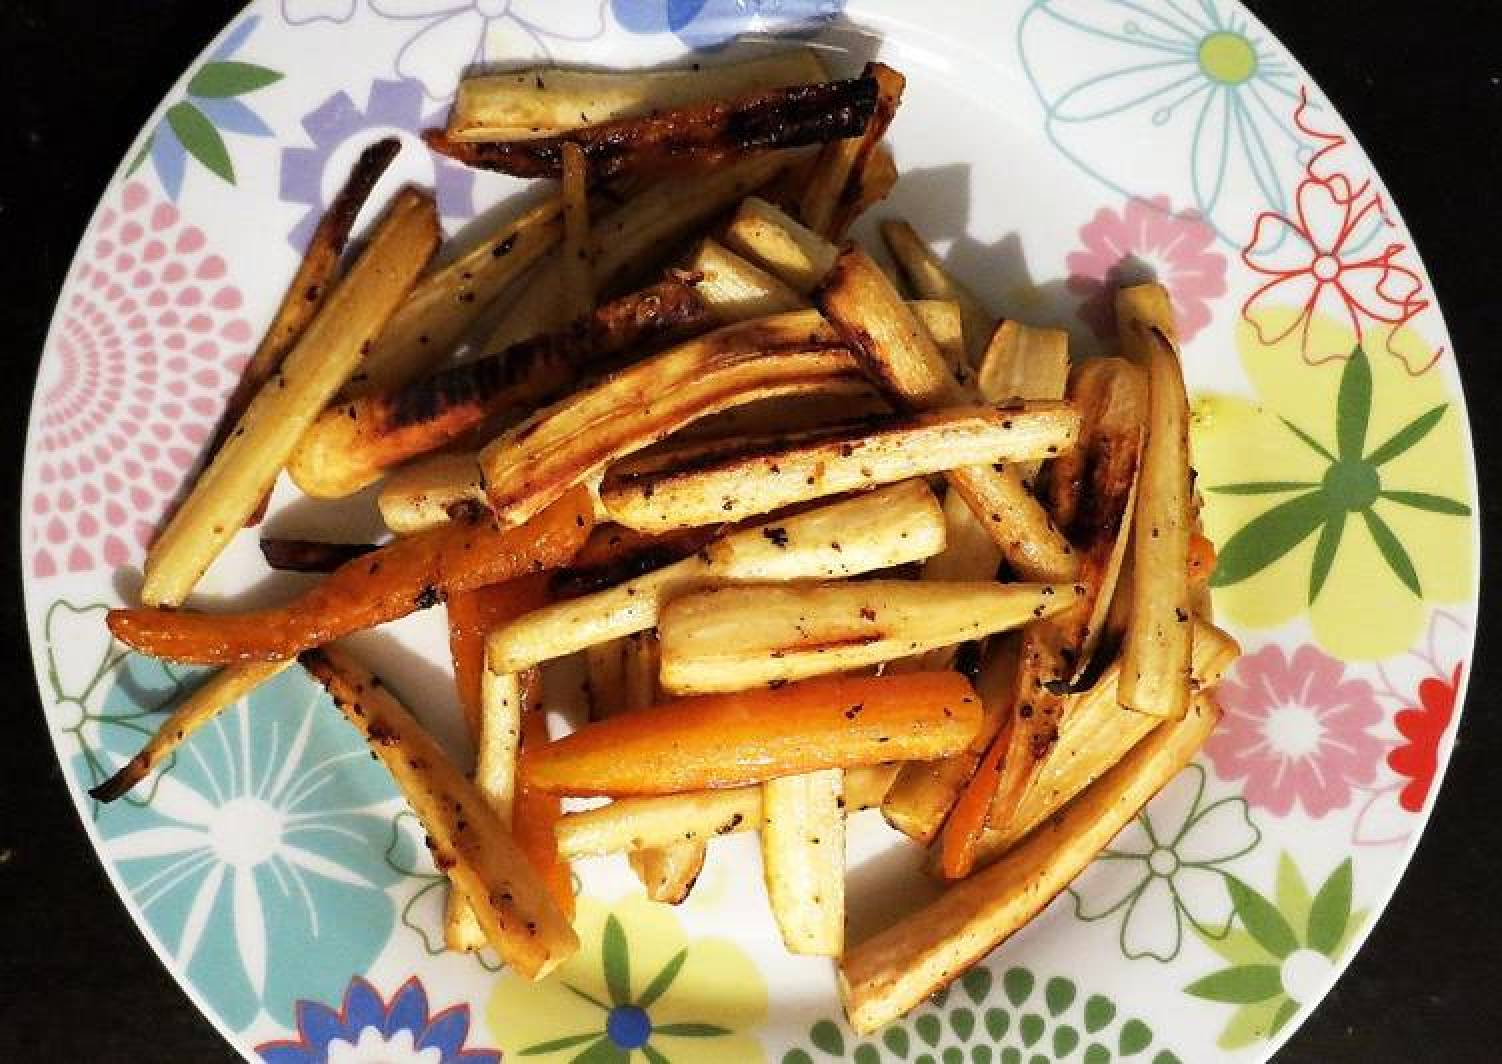 Oven grilled parsnips